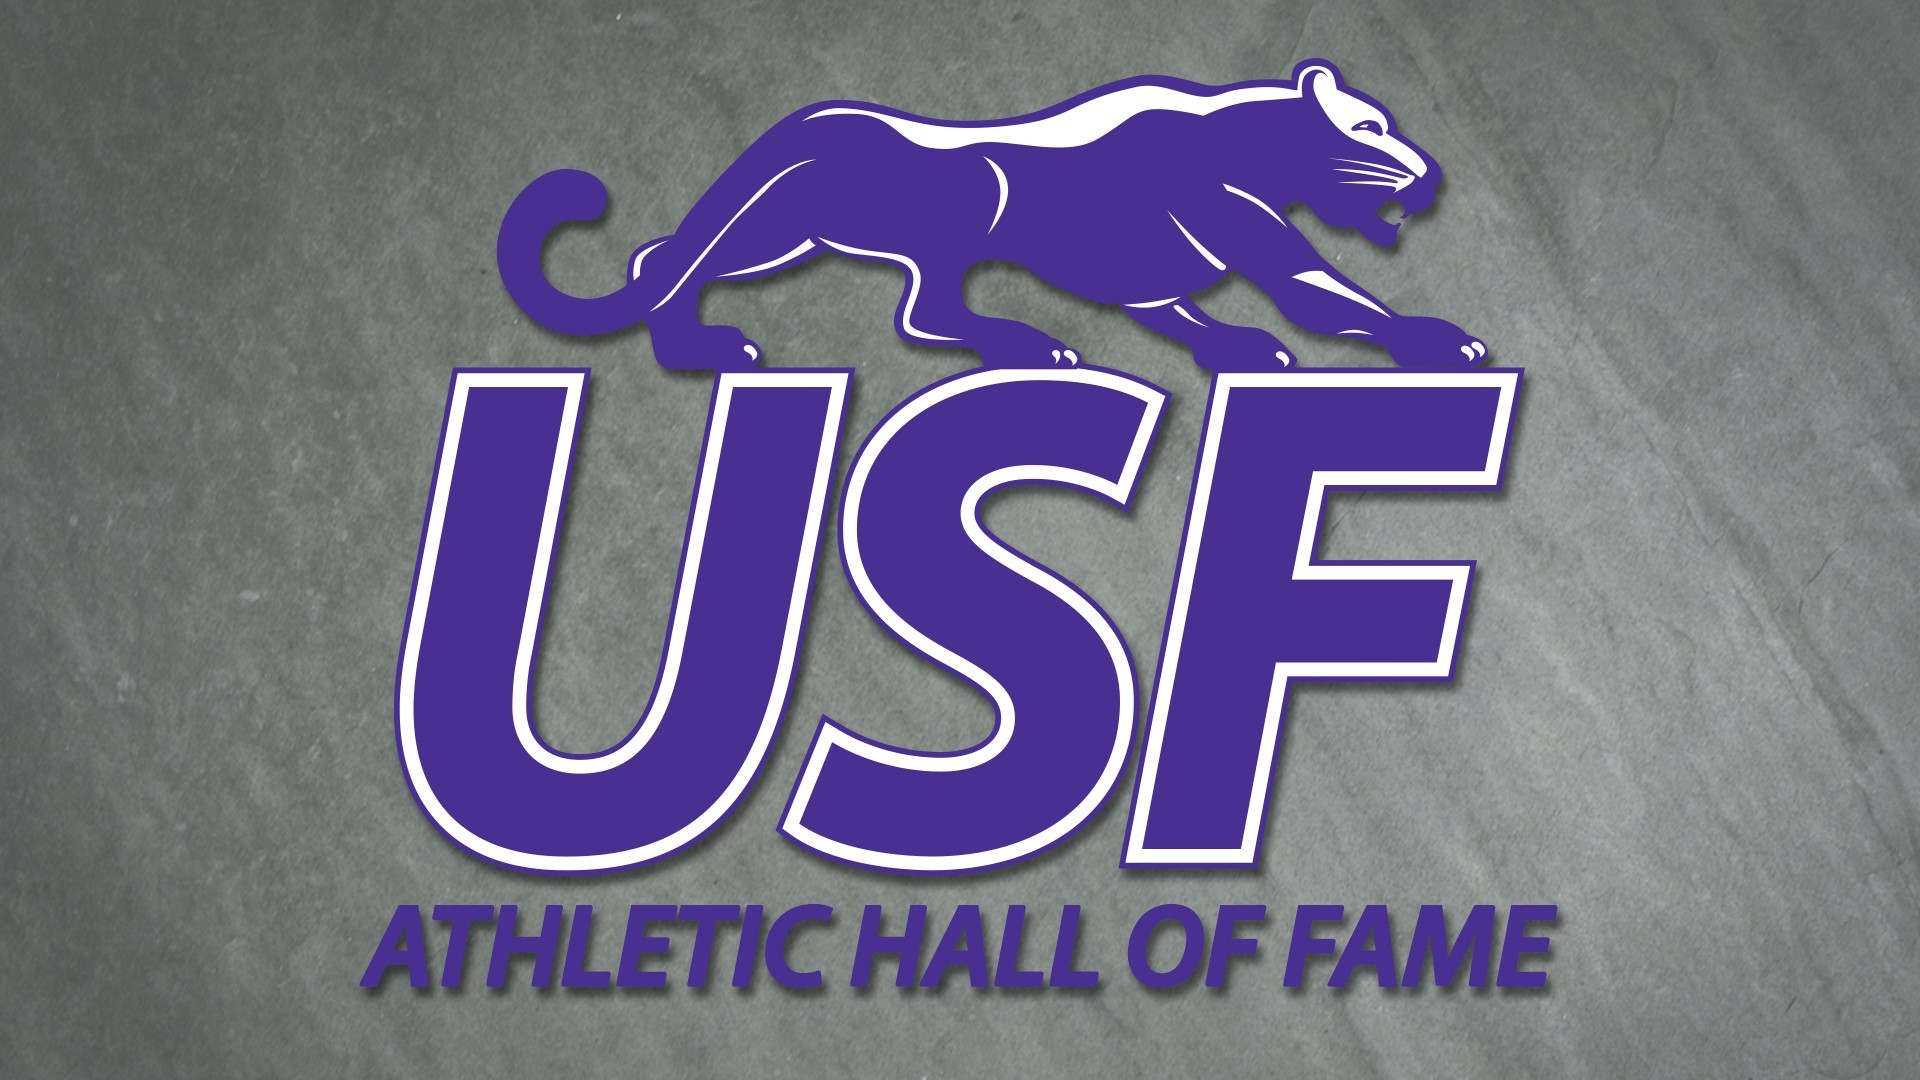 USF Athletics Hall of Fame graphic